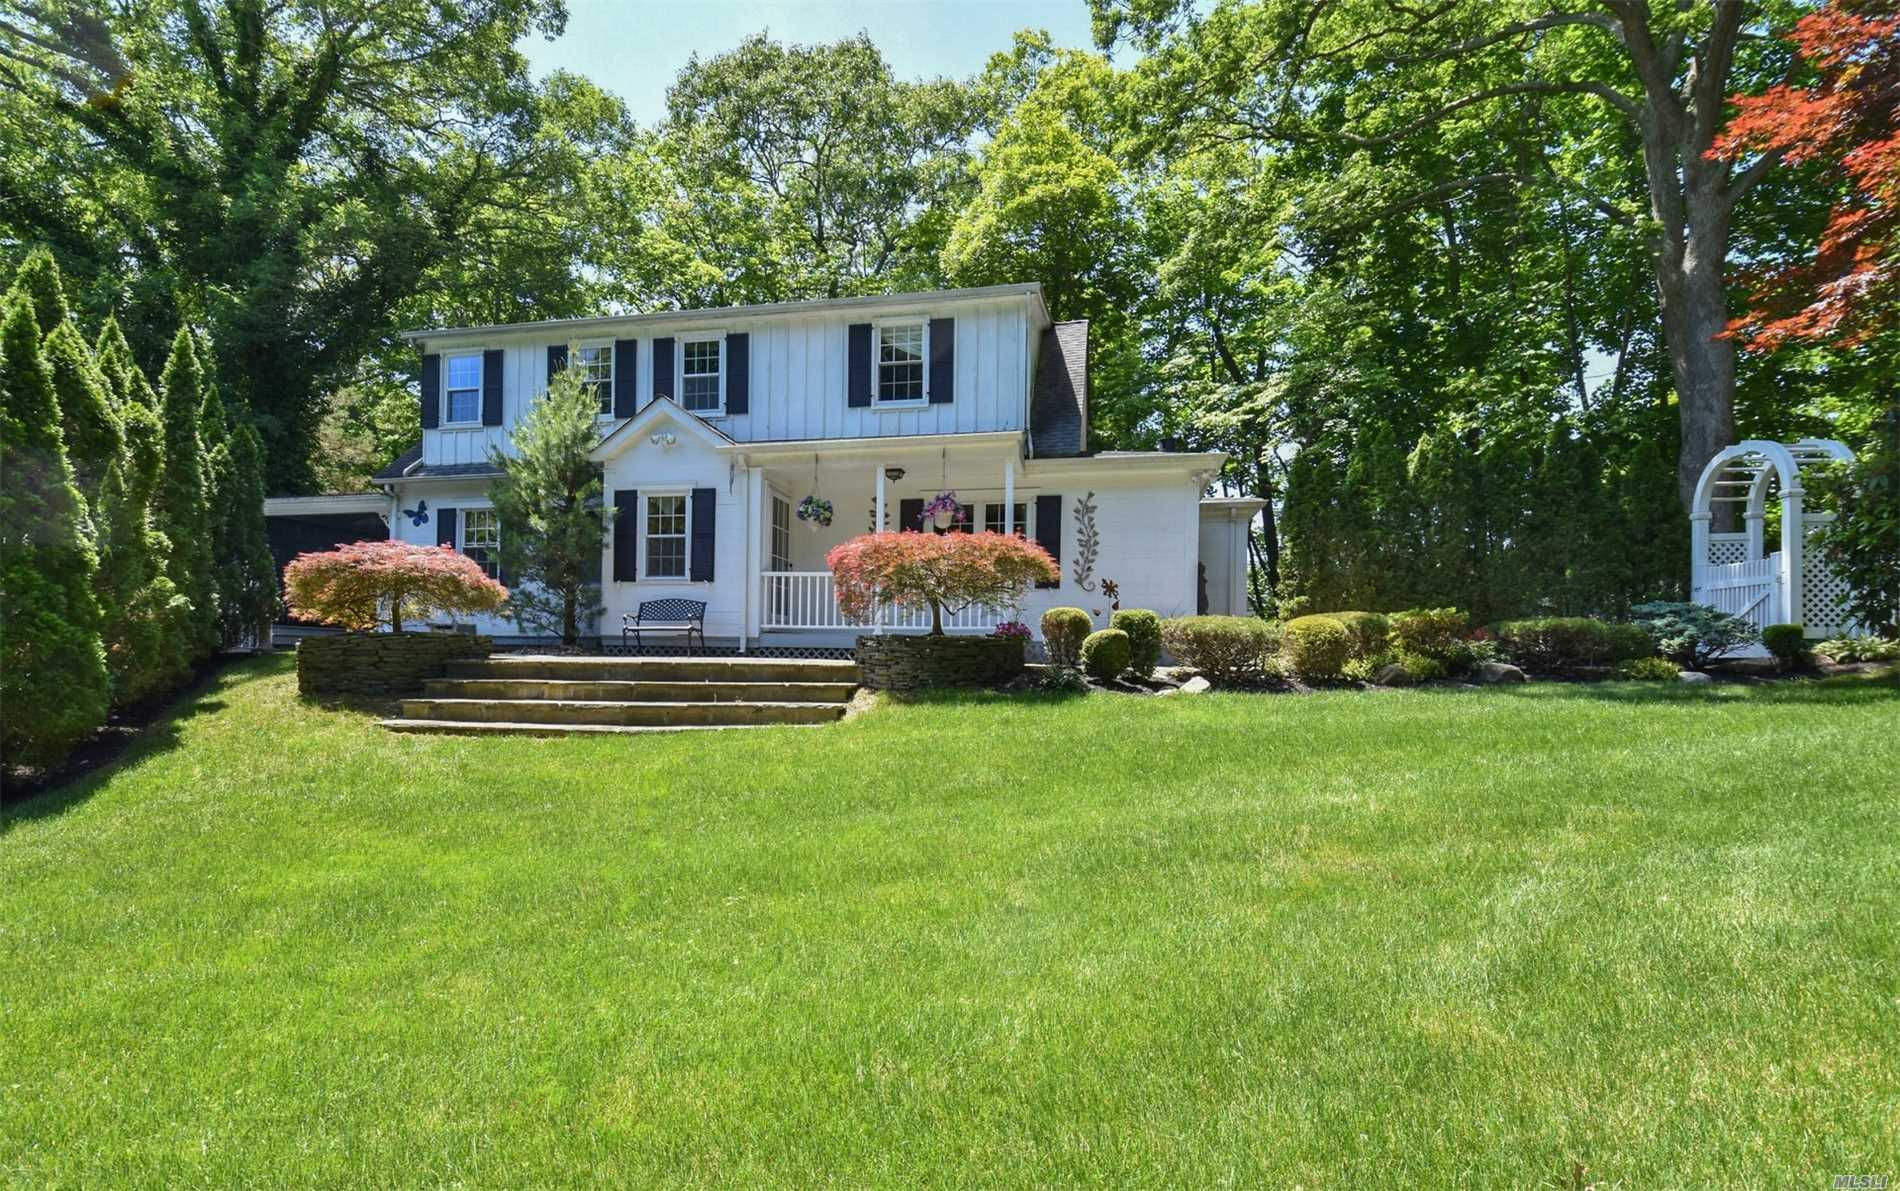 Photo of home for sale at 198 Pidgeon Hill Rd, Huntington Sta NY